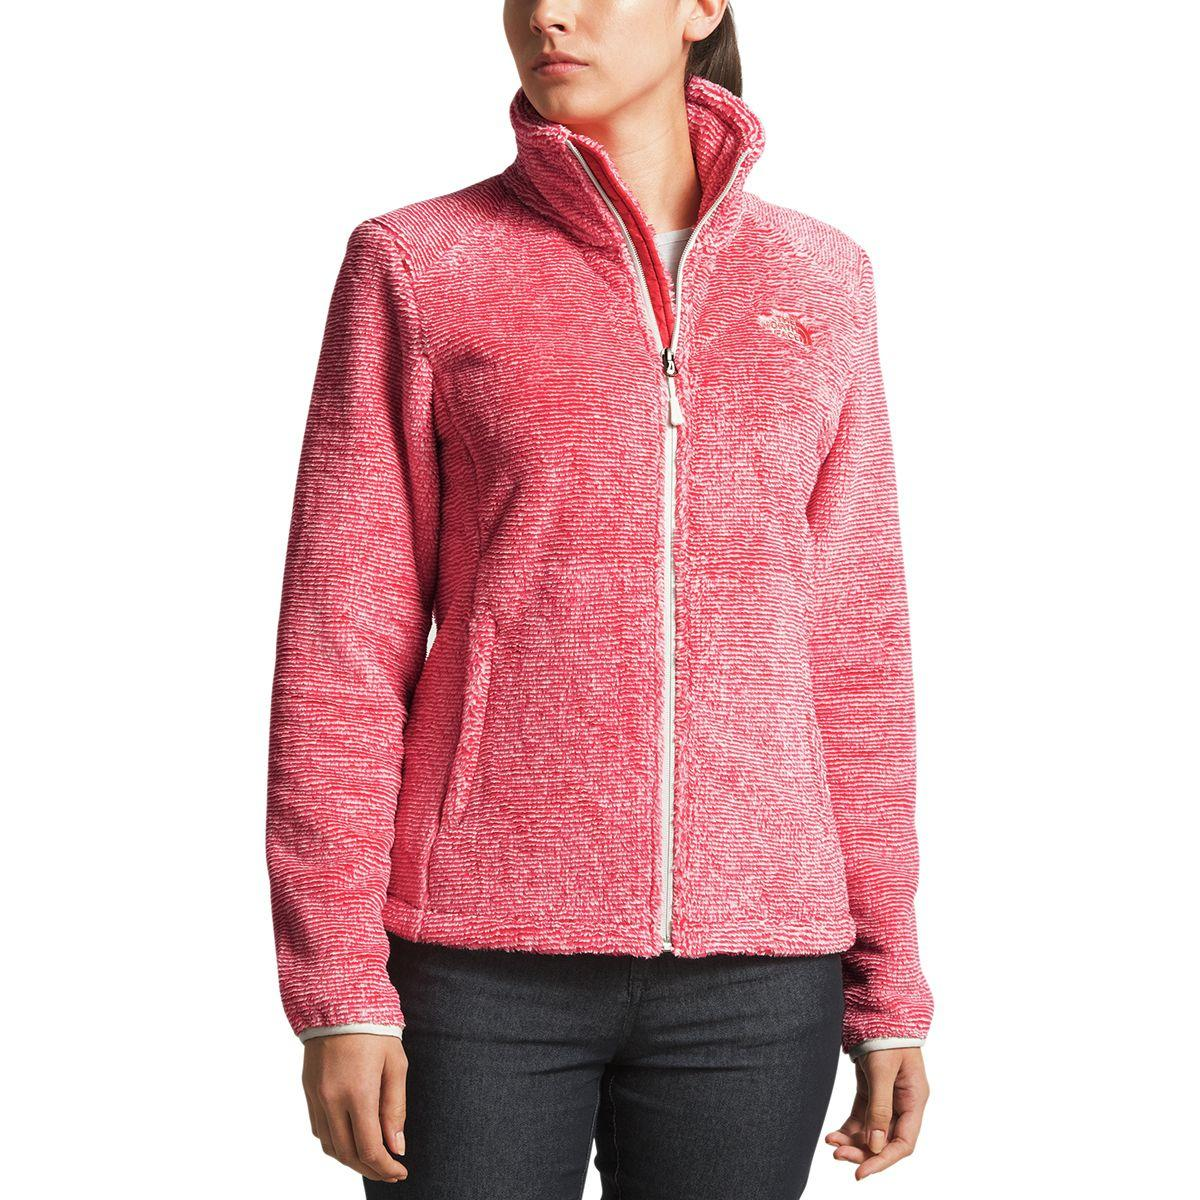 9c63e614001e Lyst - The North Face Osito 2 Fleece Jacket in Pink